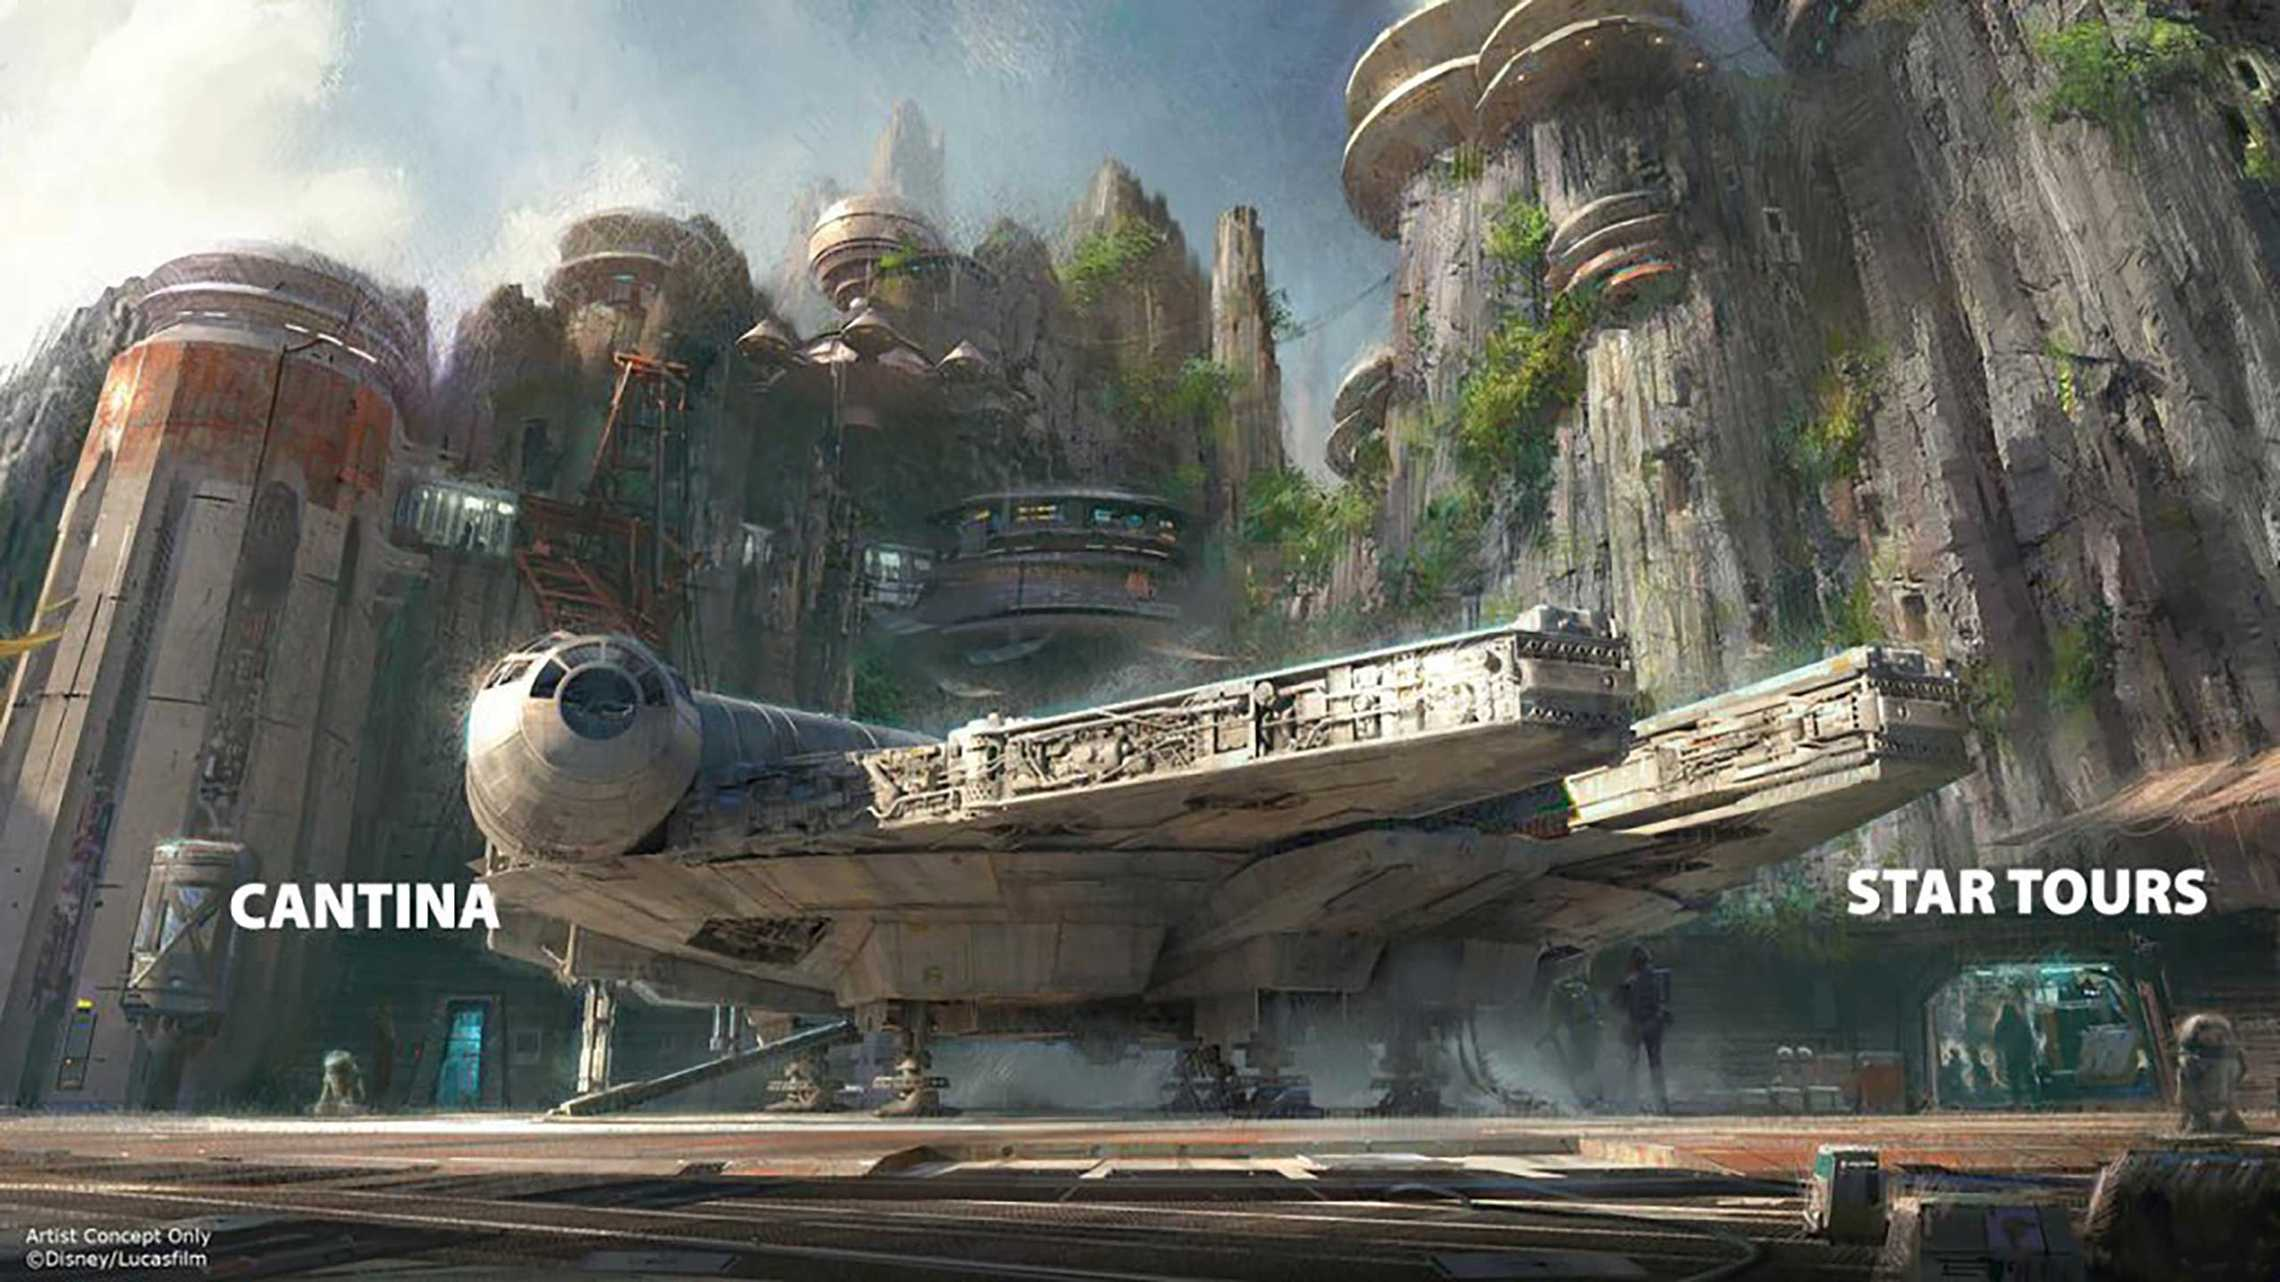 Possible attraction layout at Star Wars Land in Disney's Hollywood Studios. By Ignohippo.